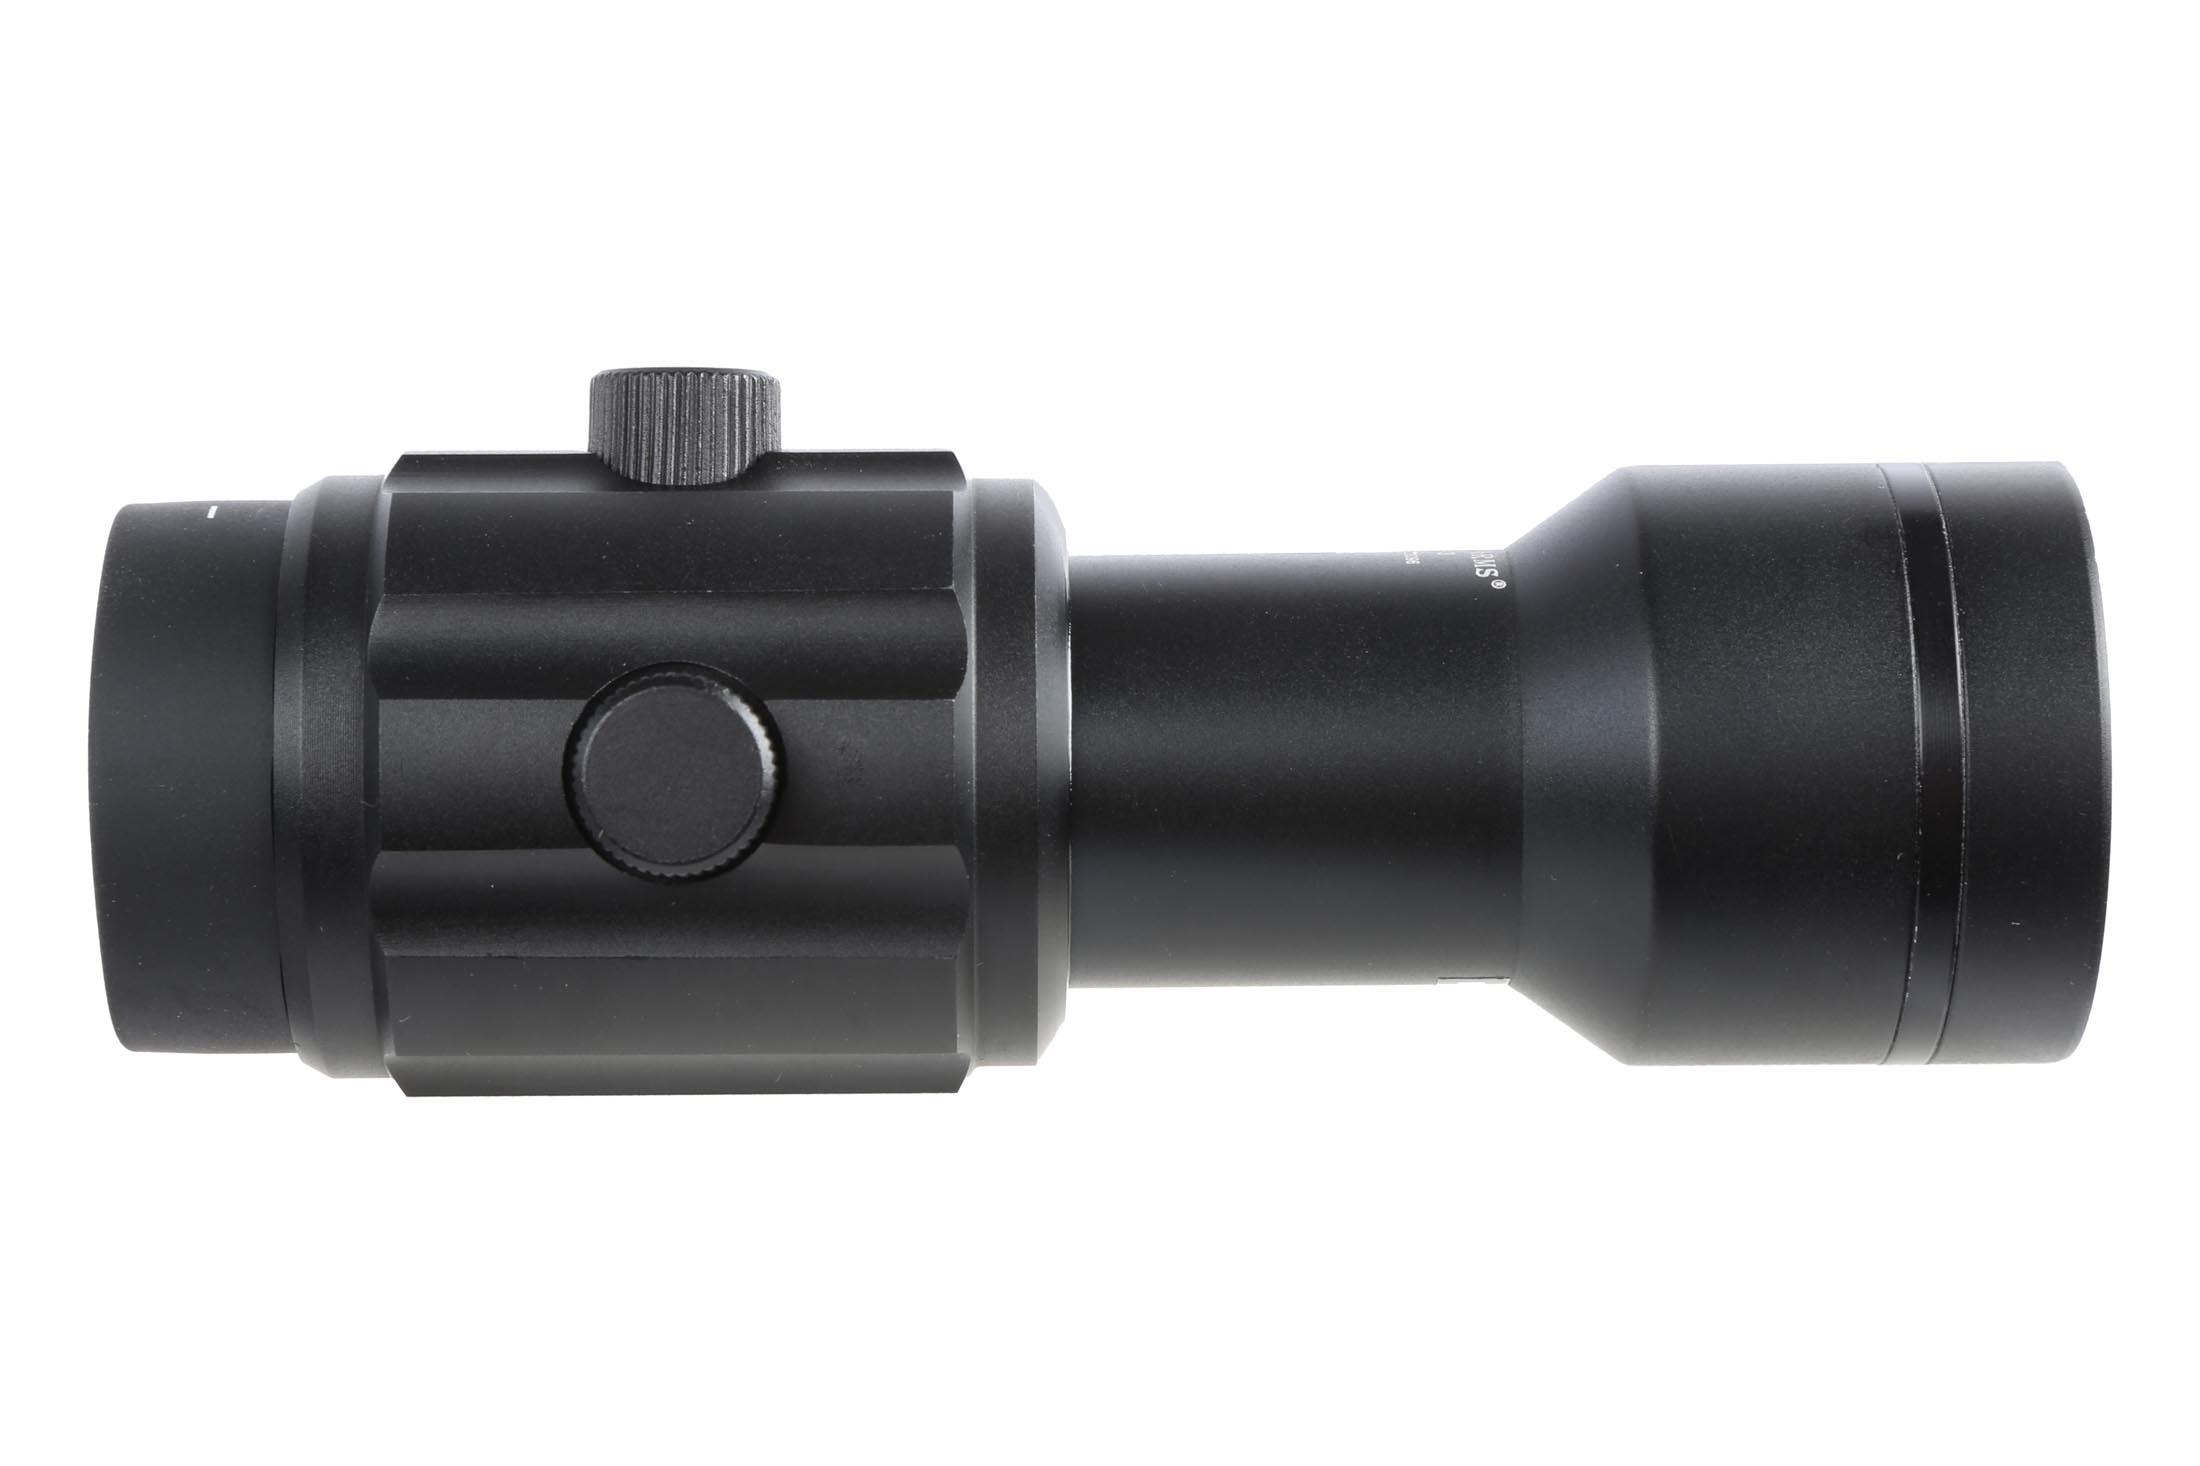 The Primary Arms 6x red dot magnifier features elevation and Azimuth adjustments